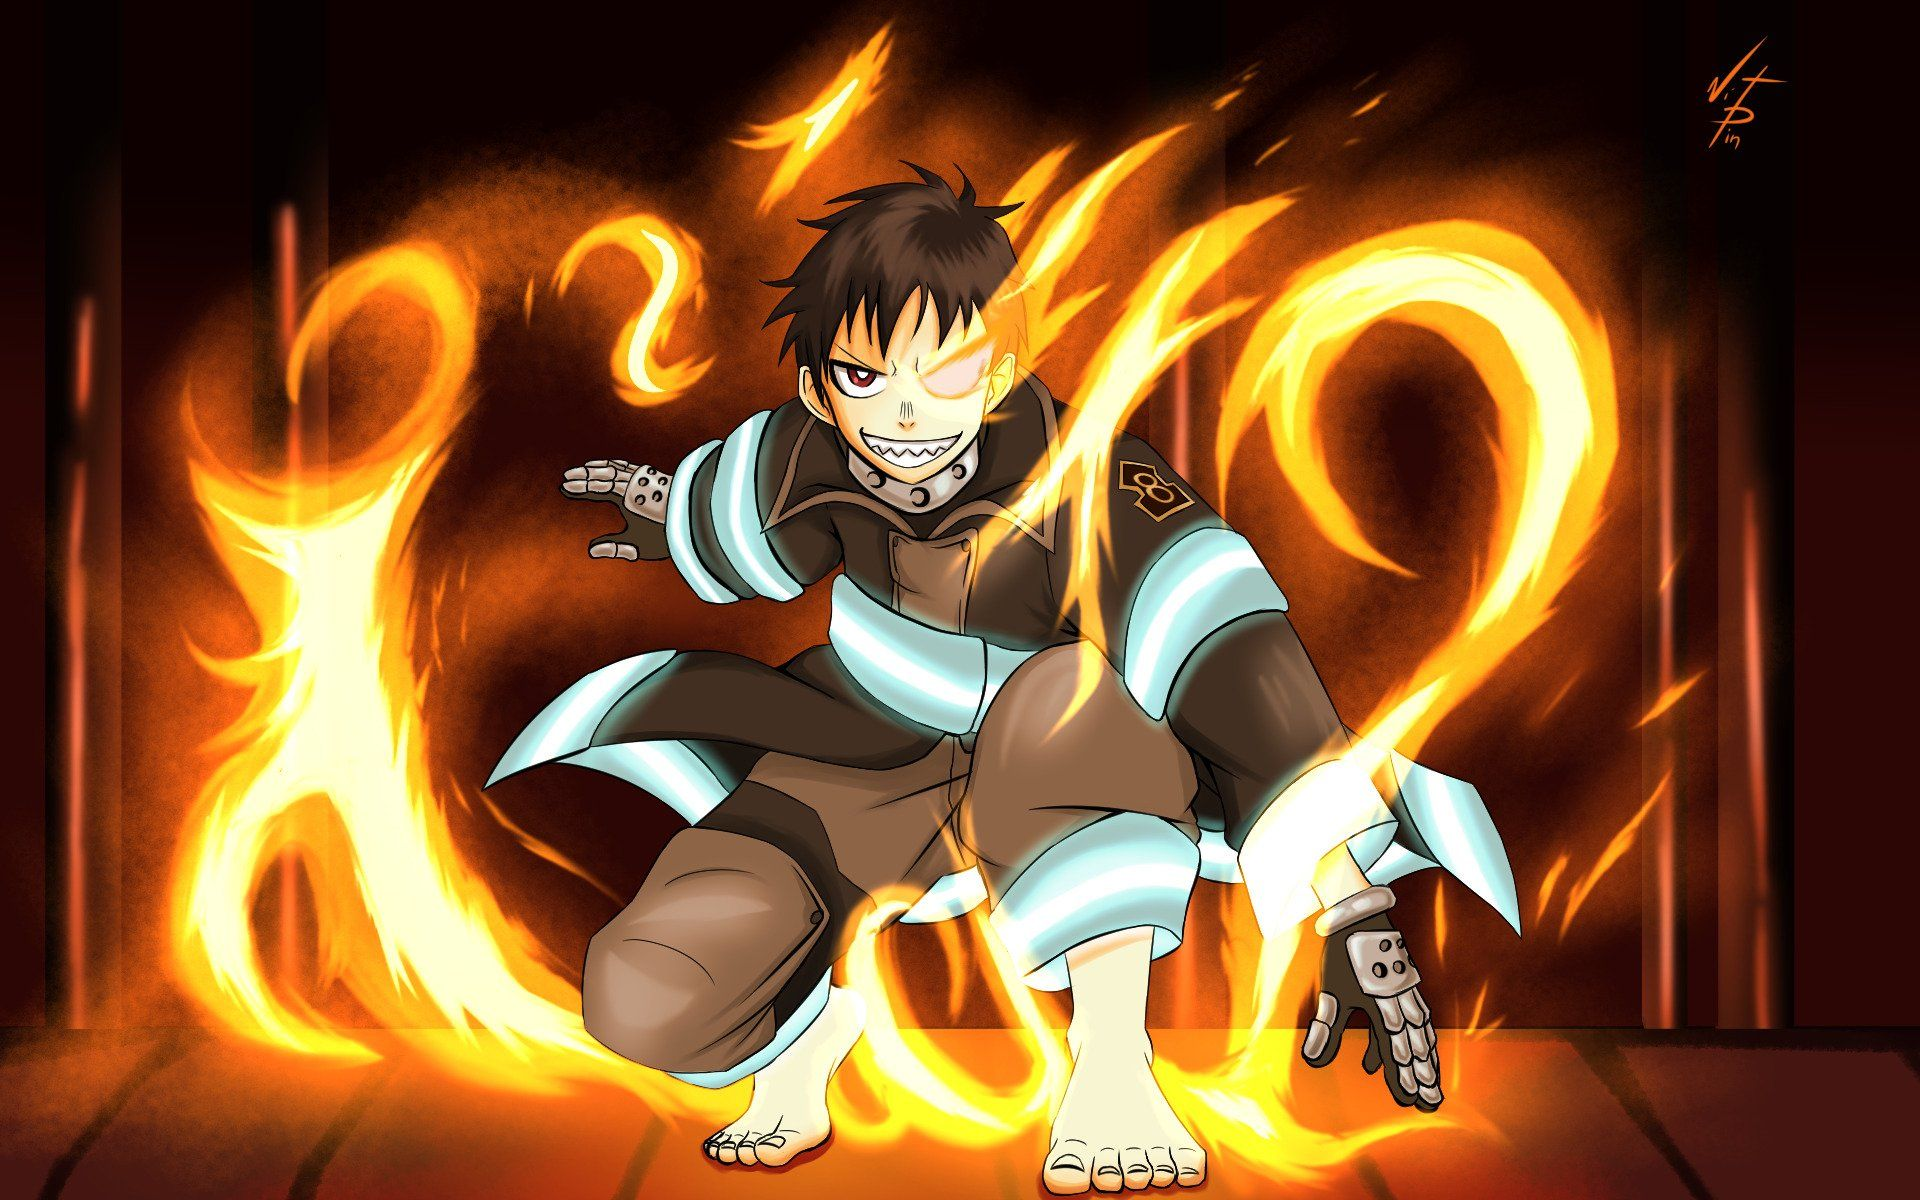 Tagged With Wallpaper Anime Wallpaper Manwha Upscale The Nerdy Girl News Fire Force Amazing Shinra Background By 1vip Anime Anime Wallpaper Shinra Kusakabe Select your favorite images and download them for use as wallpaper for your desktop or phone. anime anime wallpaper shinra kusakabe